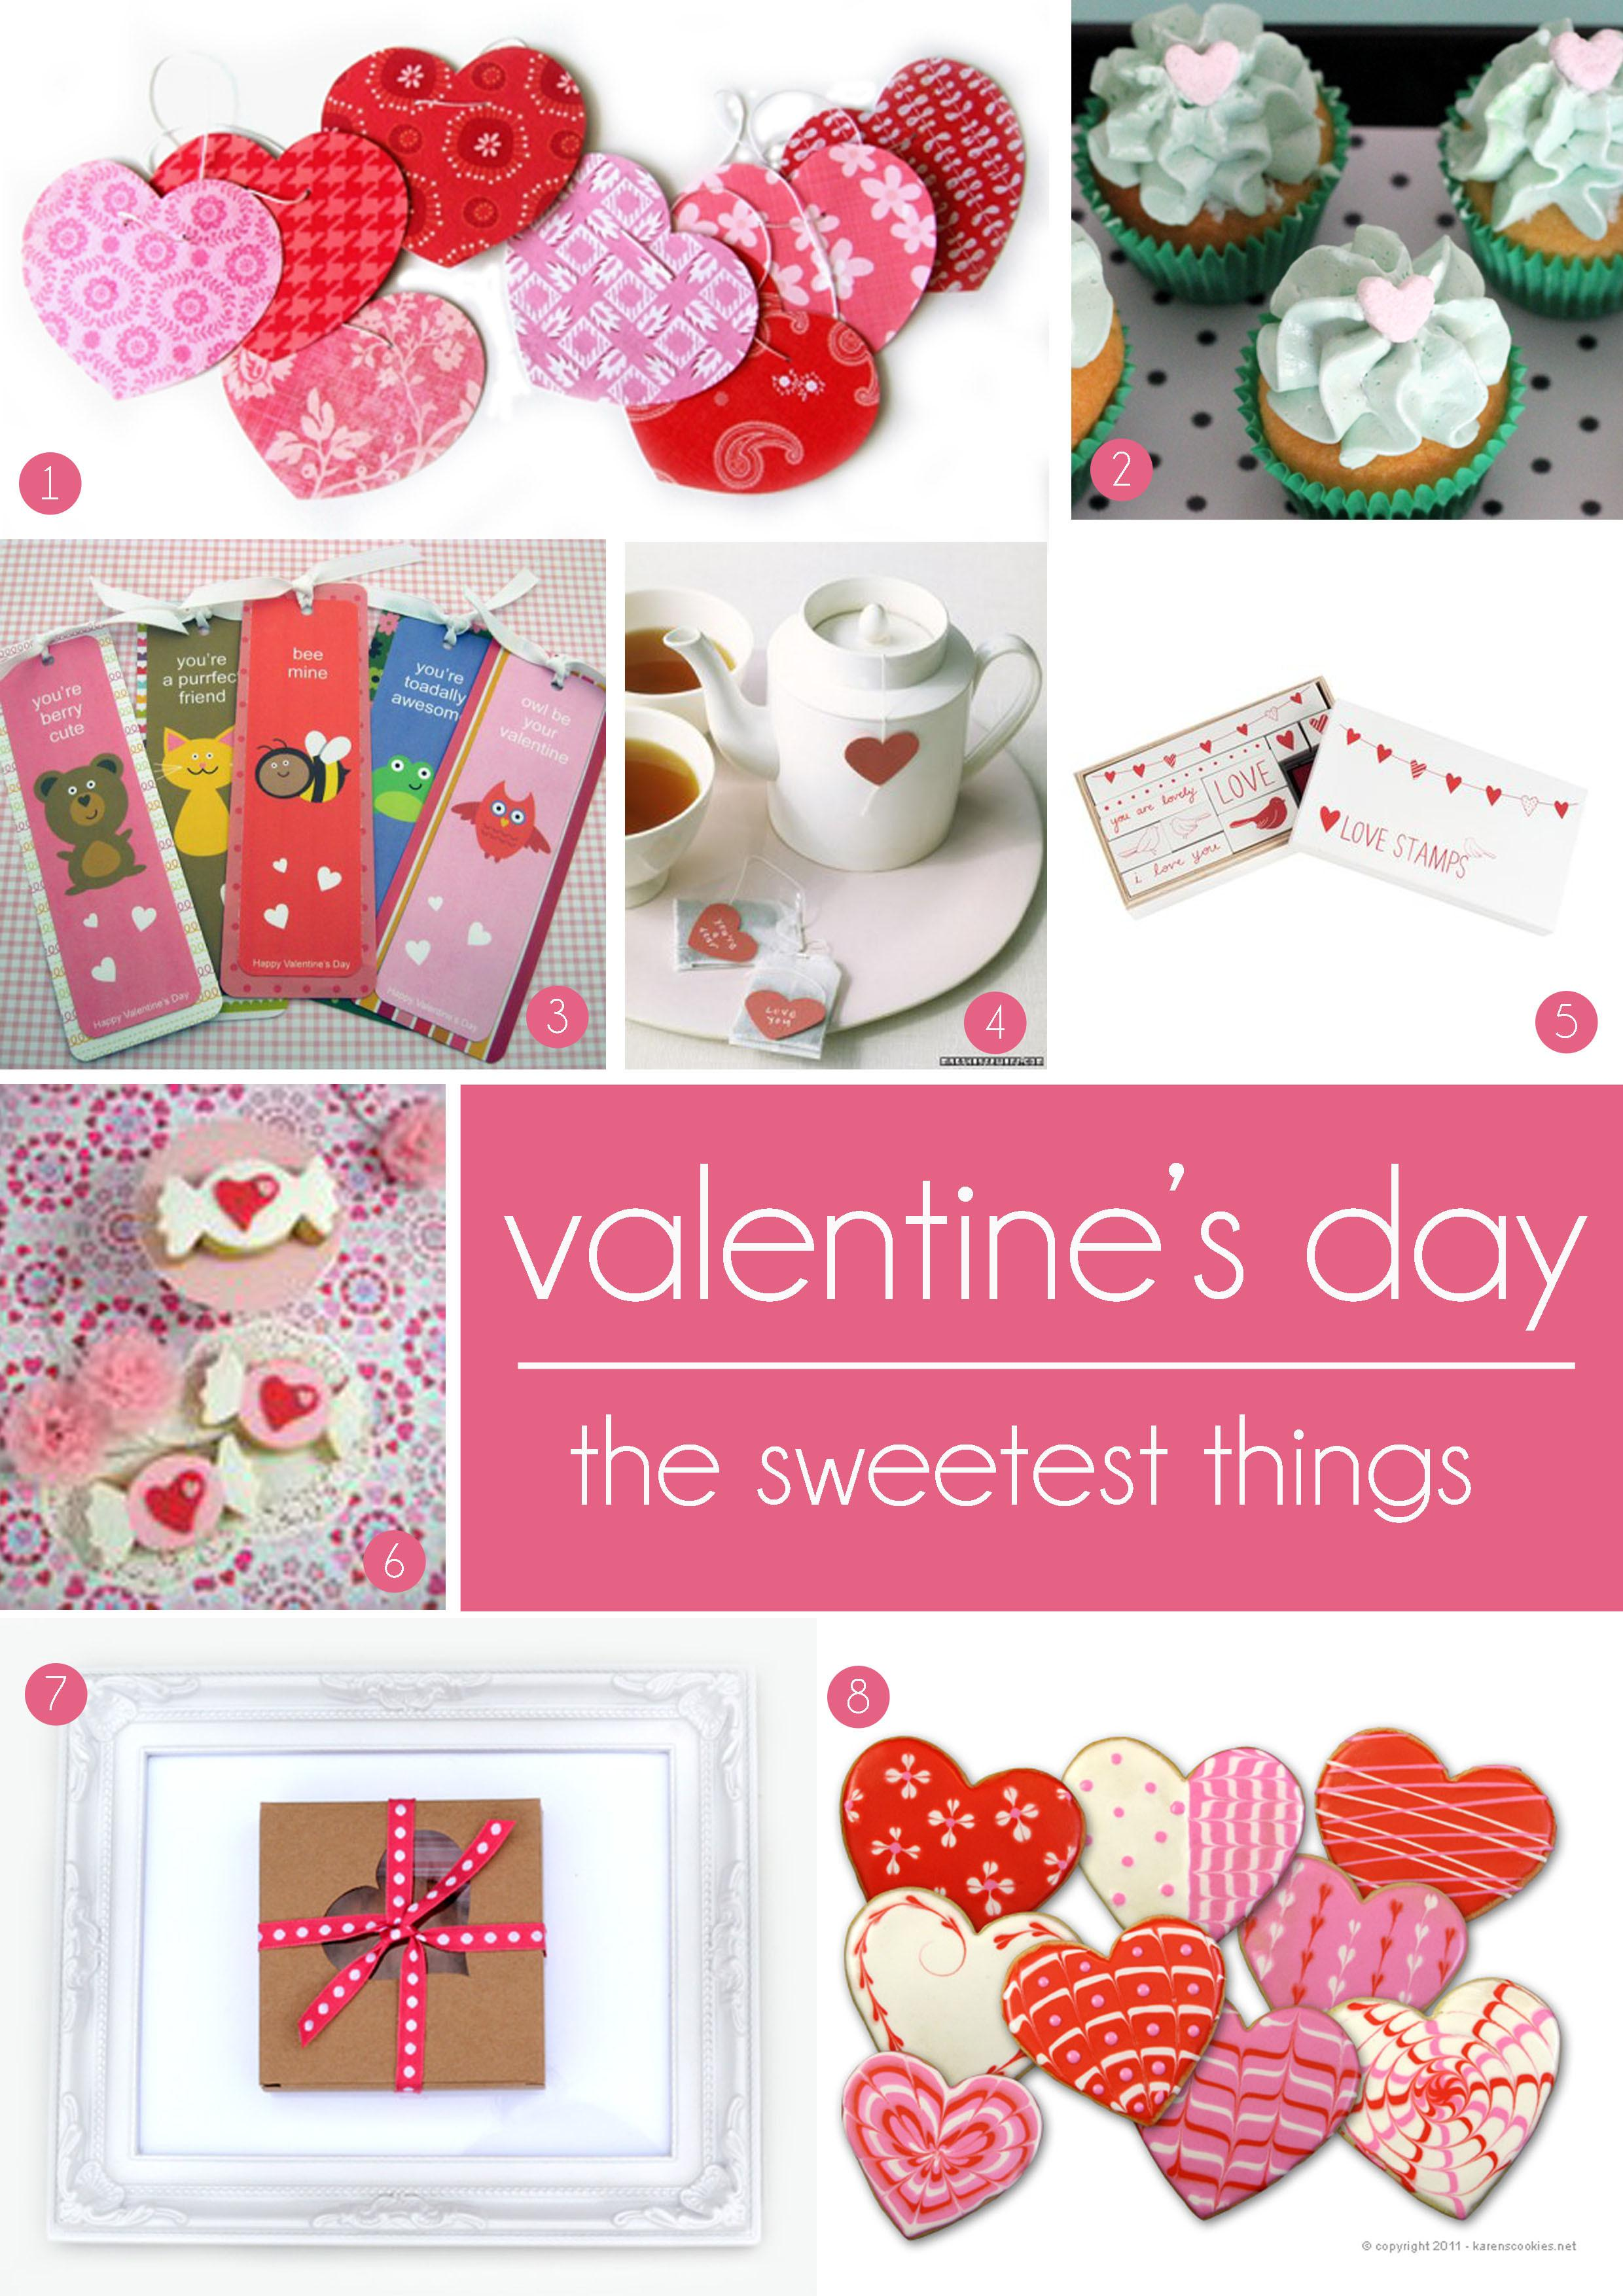 Inspiration Sweetest Things Your Valentine